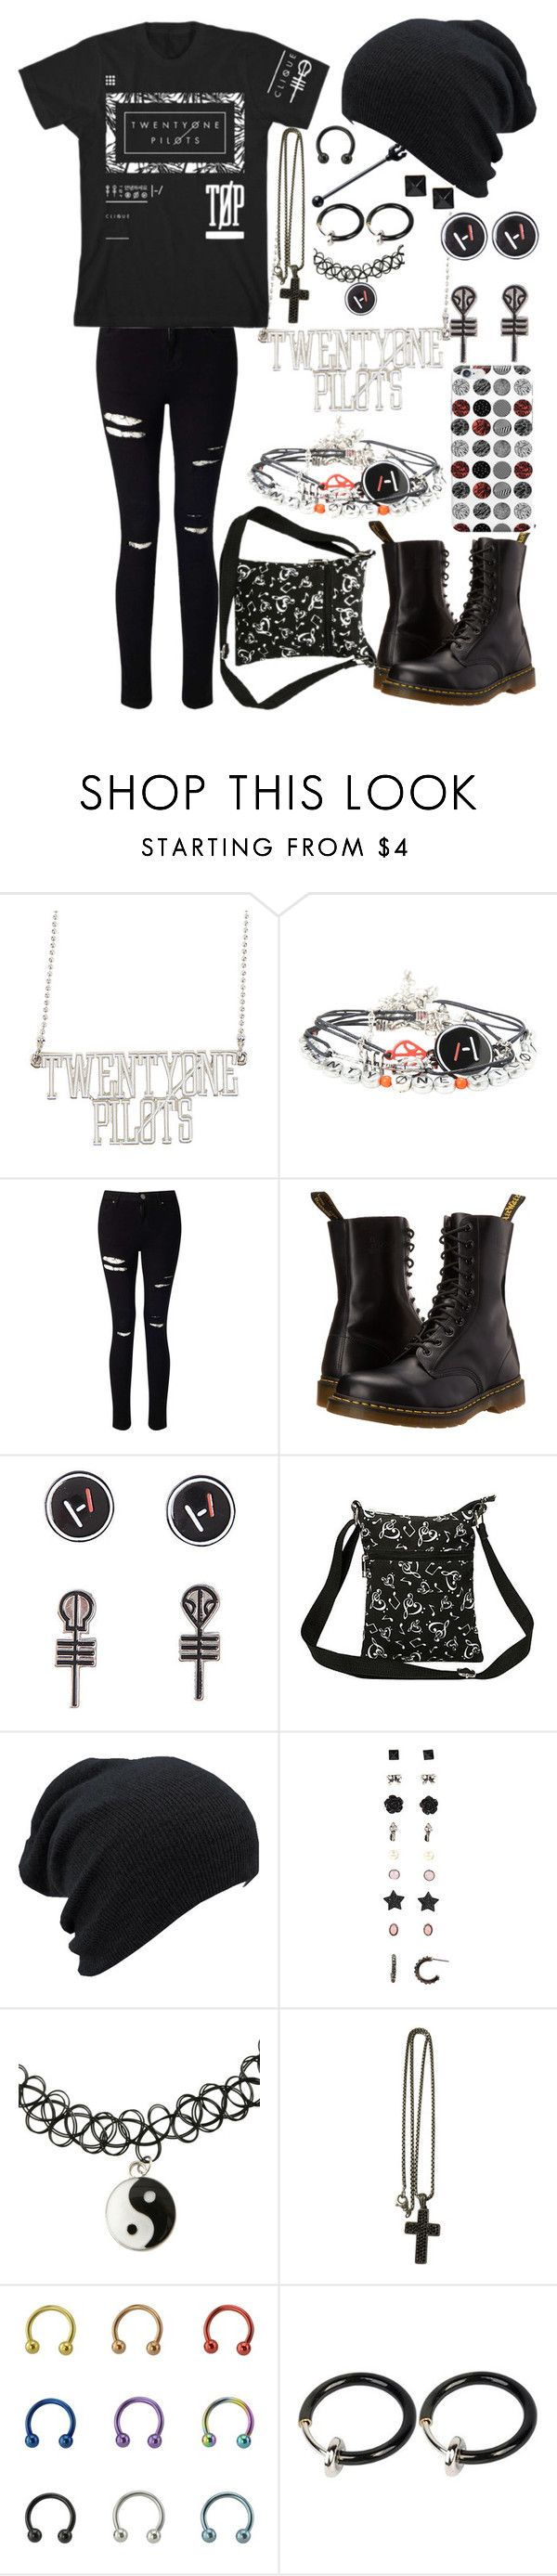 """""""Twenty One Pilots"""" by legacy-sinister ❤ liked on Polyvore featuring Miss Selfridge, Dr. Martens and David Yurman"""